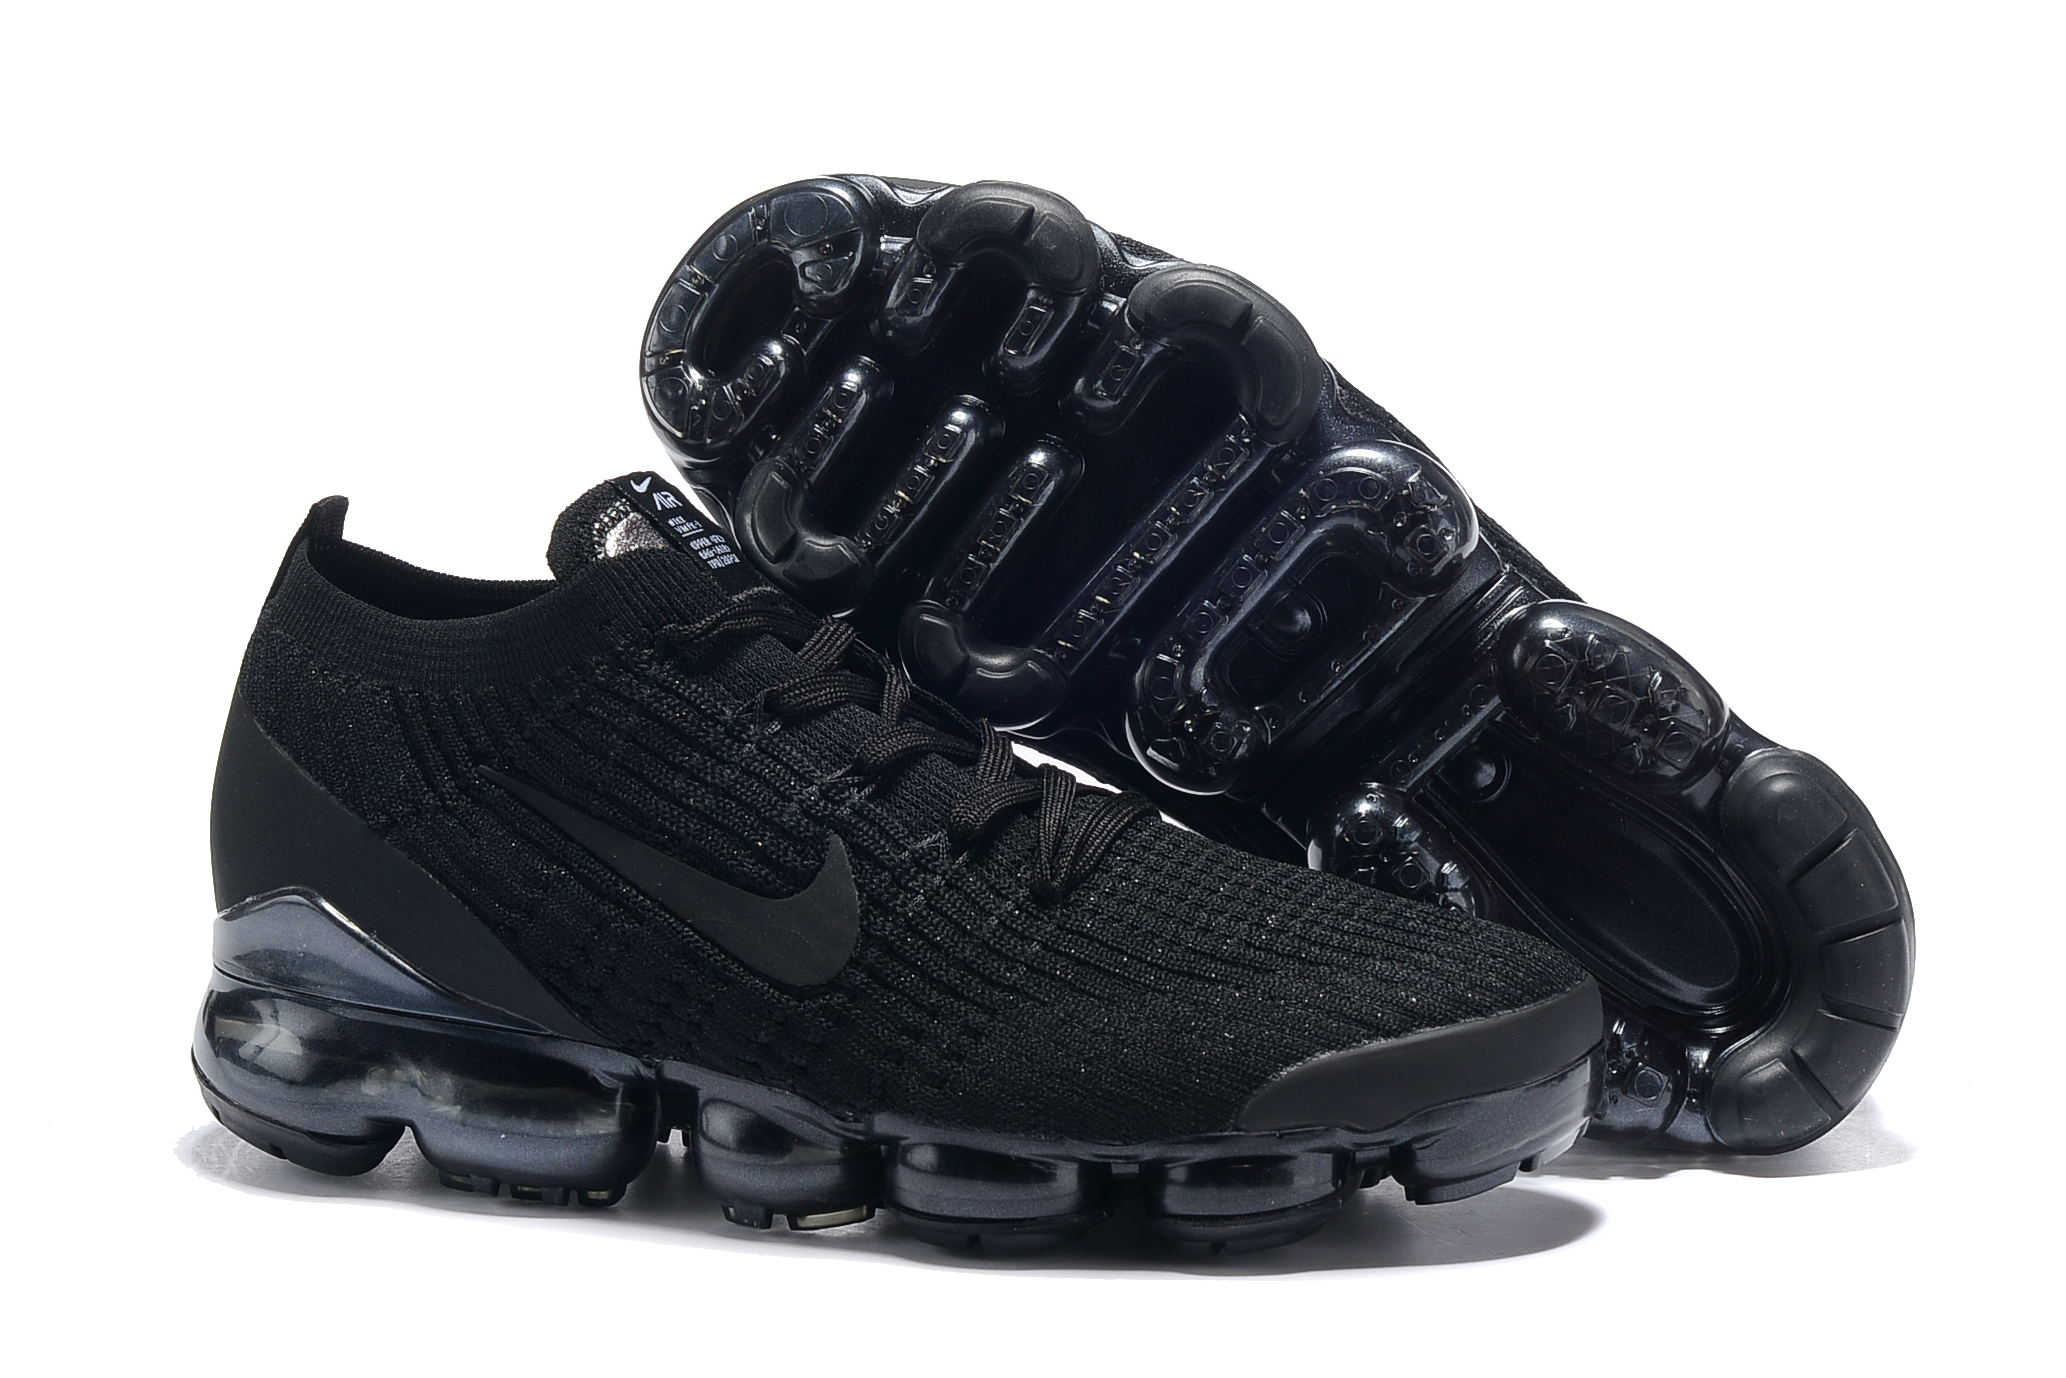 Nike Air VaporMax 2019 Flyknit All Black Shoes